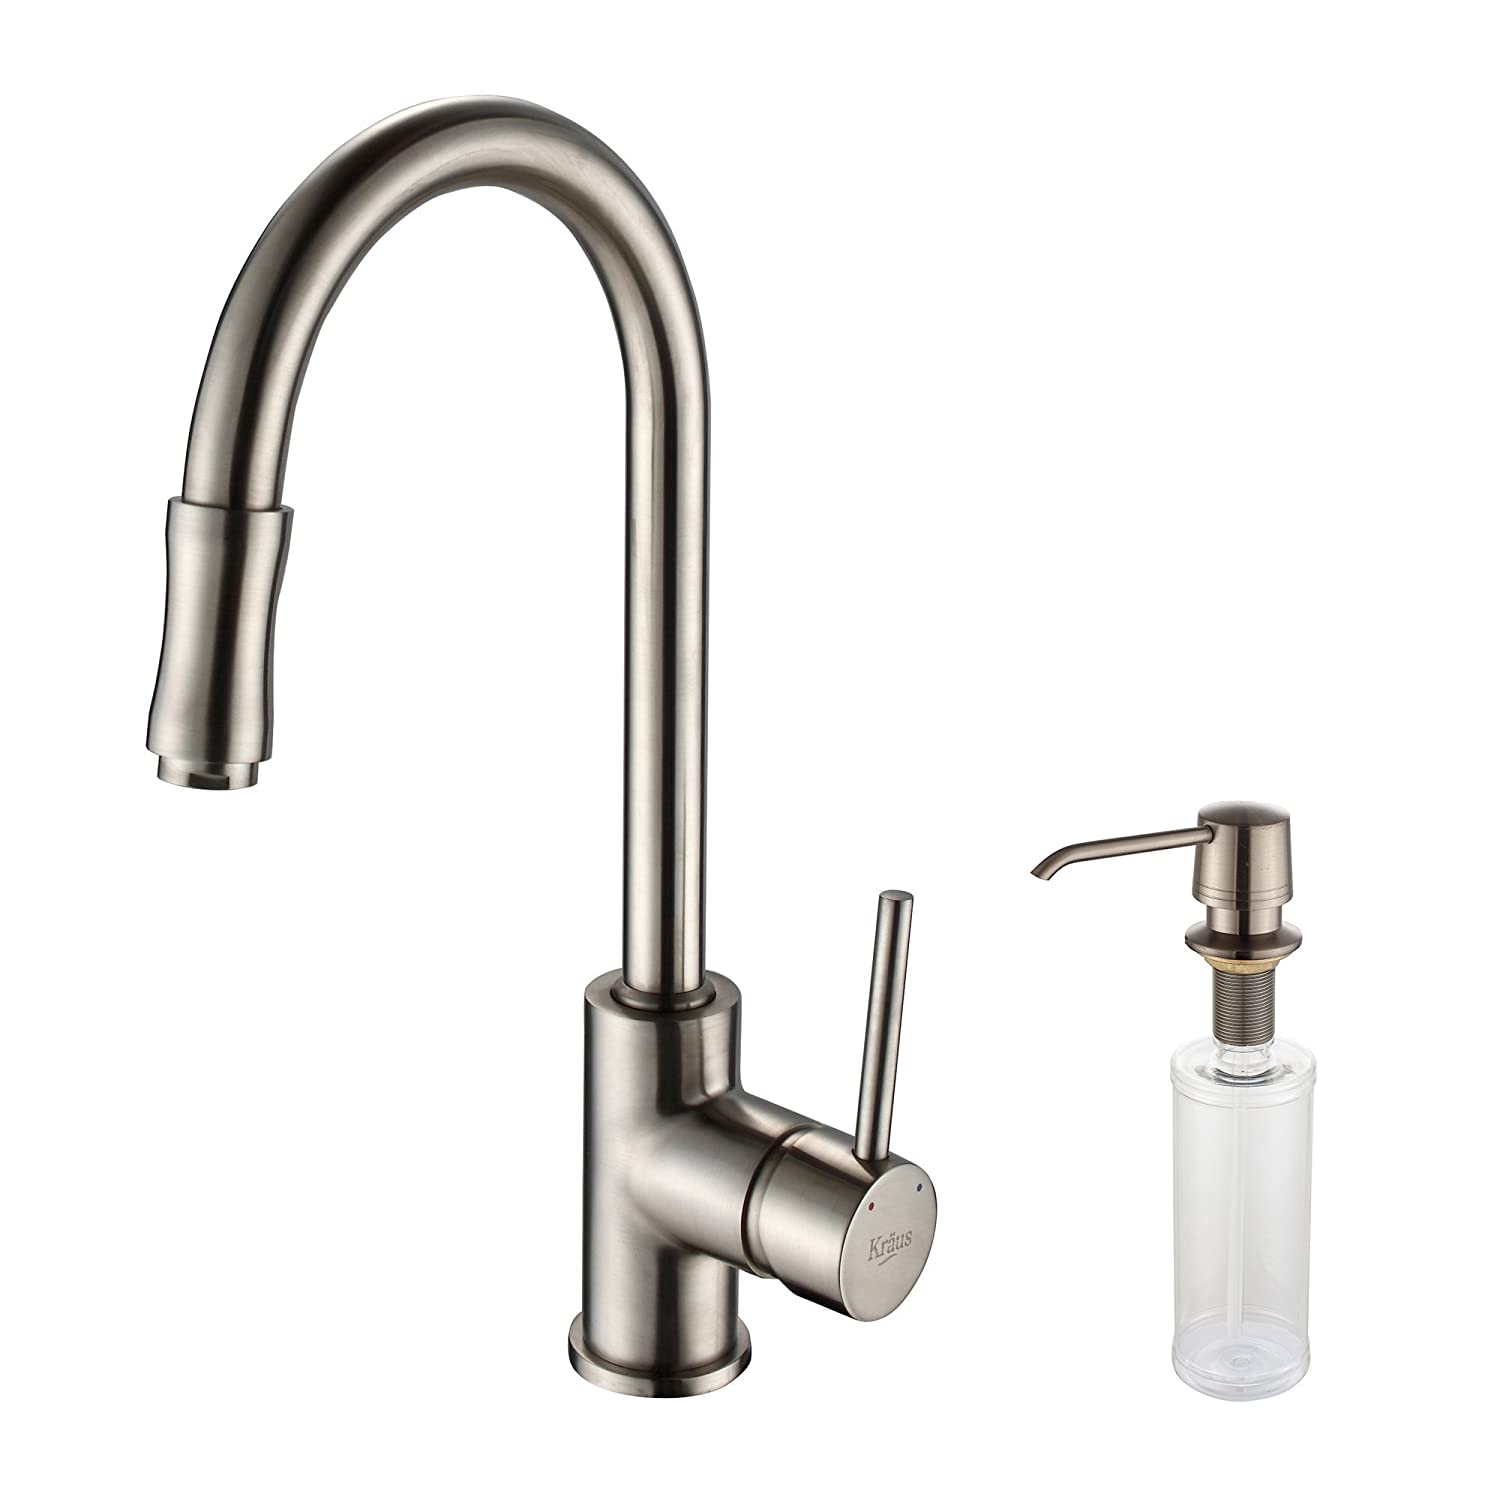 kraus kpf 1622 ksd 30sn single lever pull down kitchen faucet and